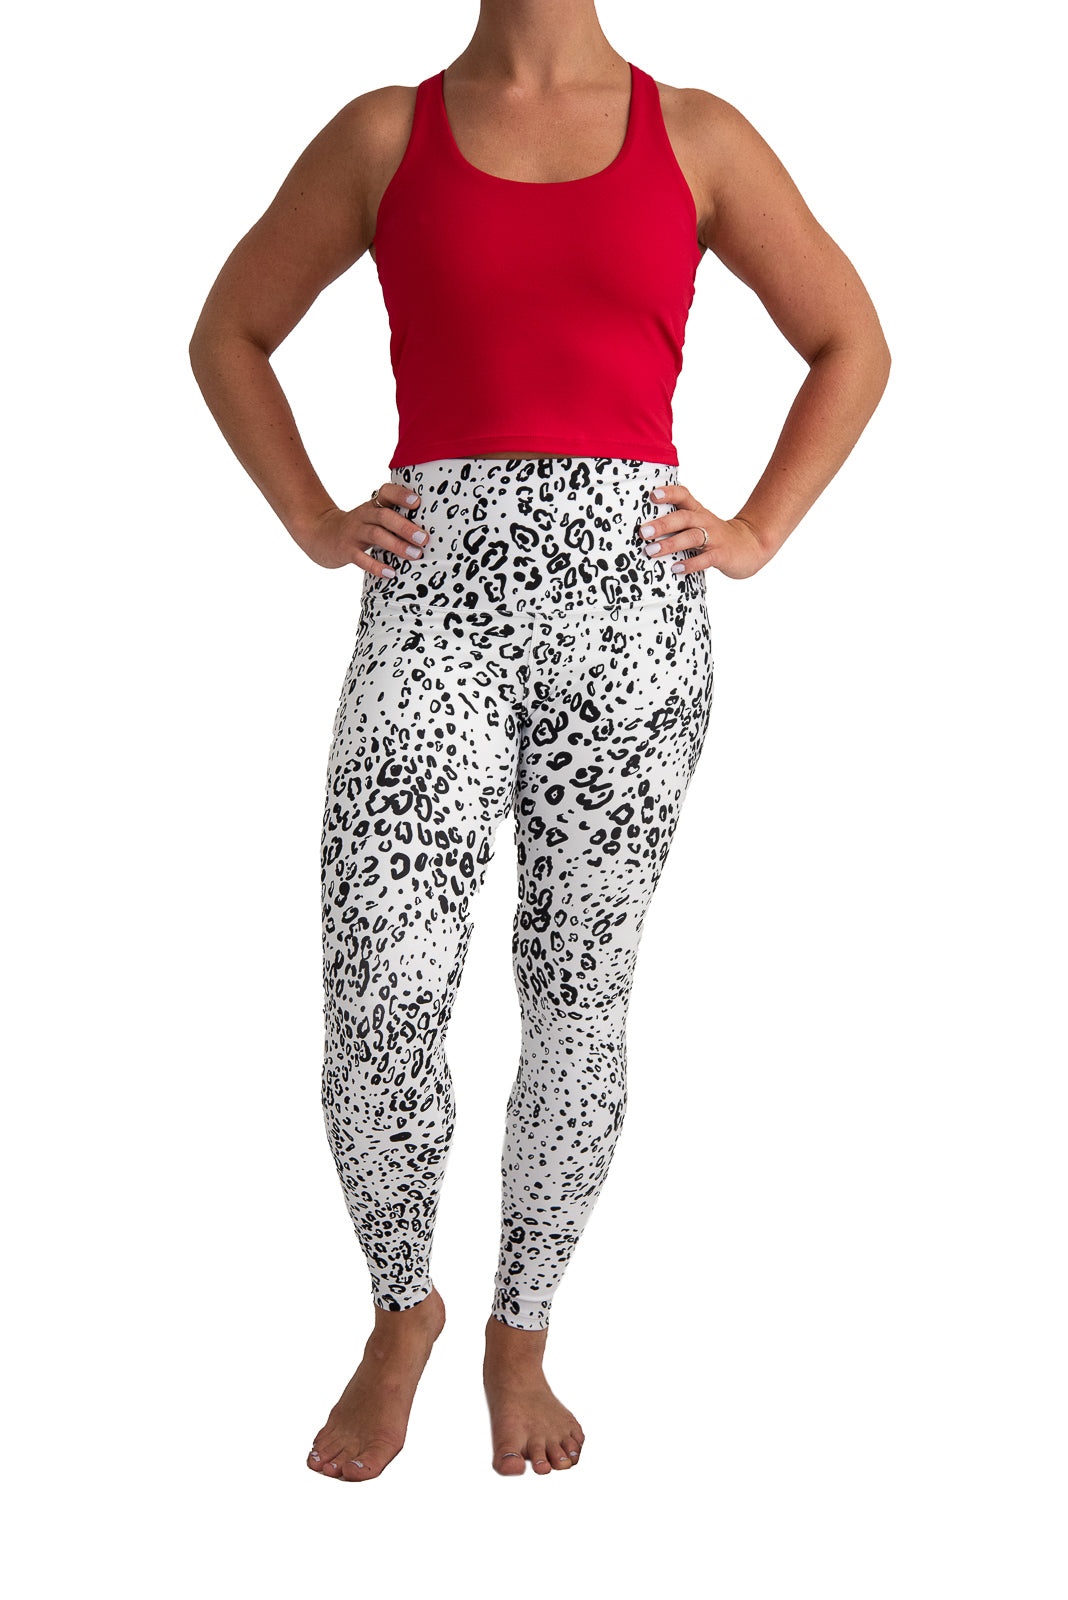 Black & White Cheetah Yoga Pants